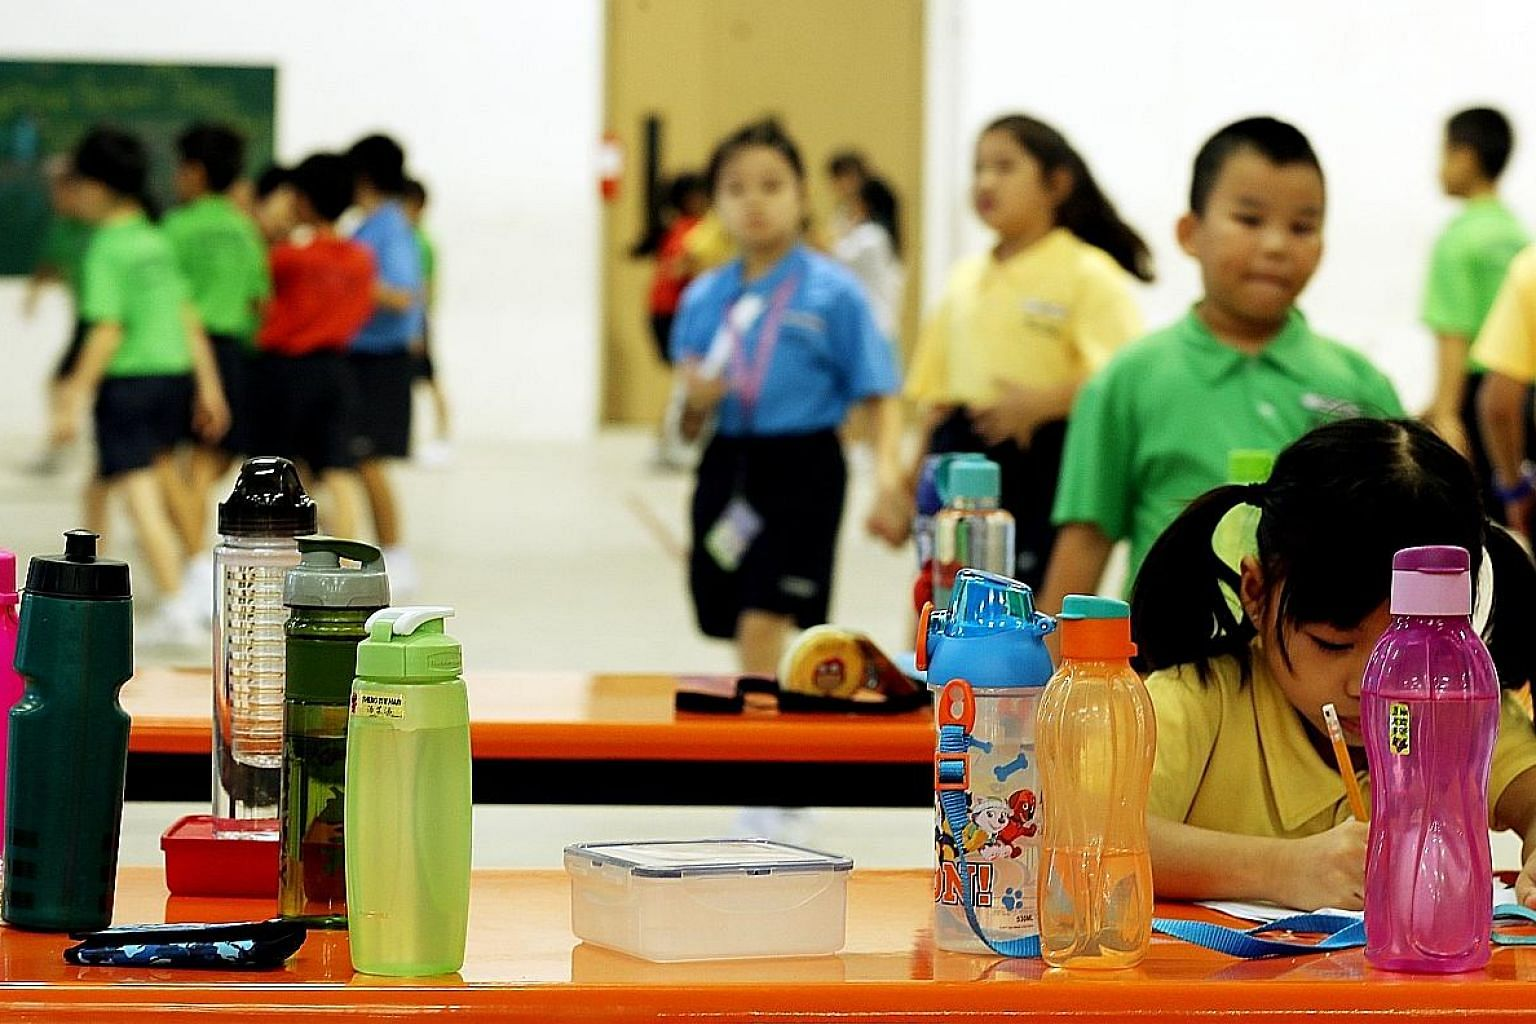 To promote healthy living, some primary schools have done away with drink stalls. Some 86 per cent of people surveyed said they would heed Prime Minister Lee Hsien Loong's advice to cut down on sugar intake.